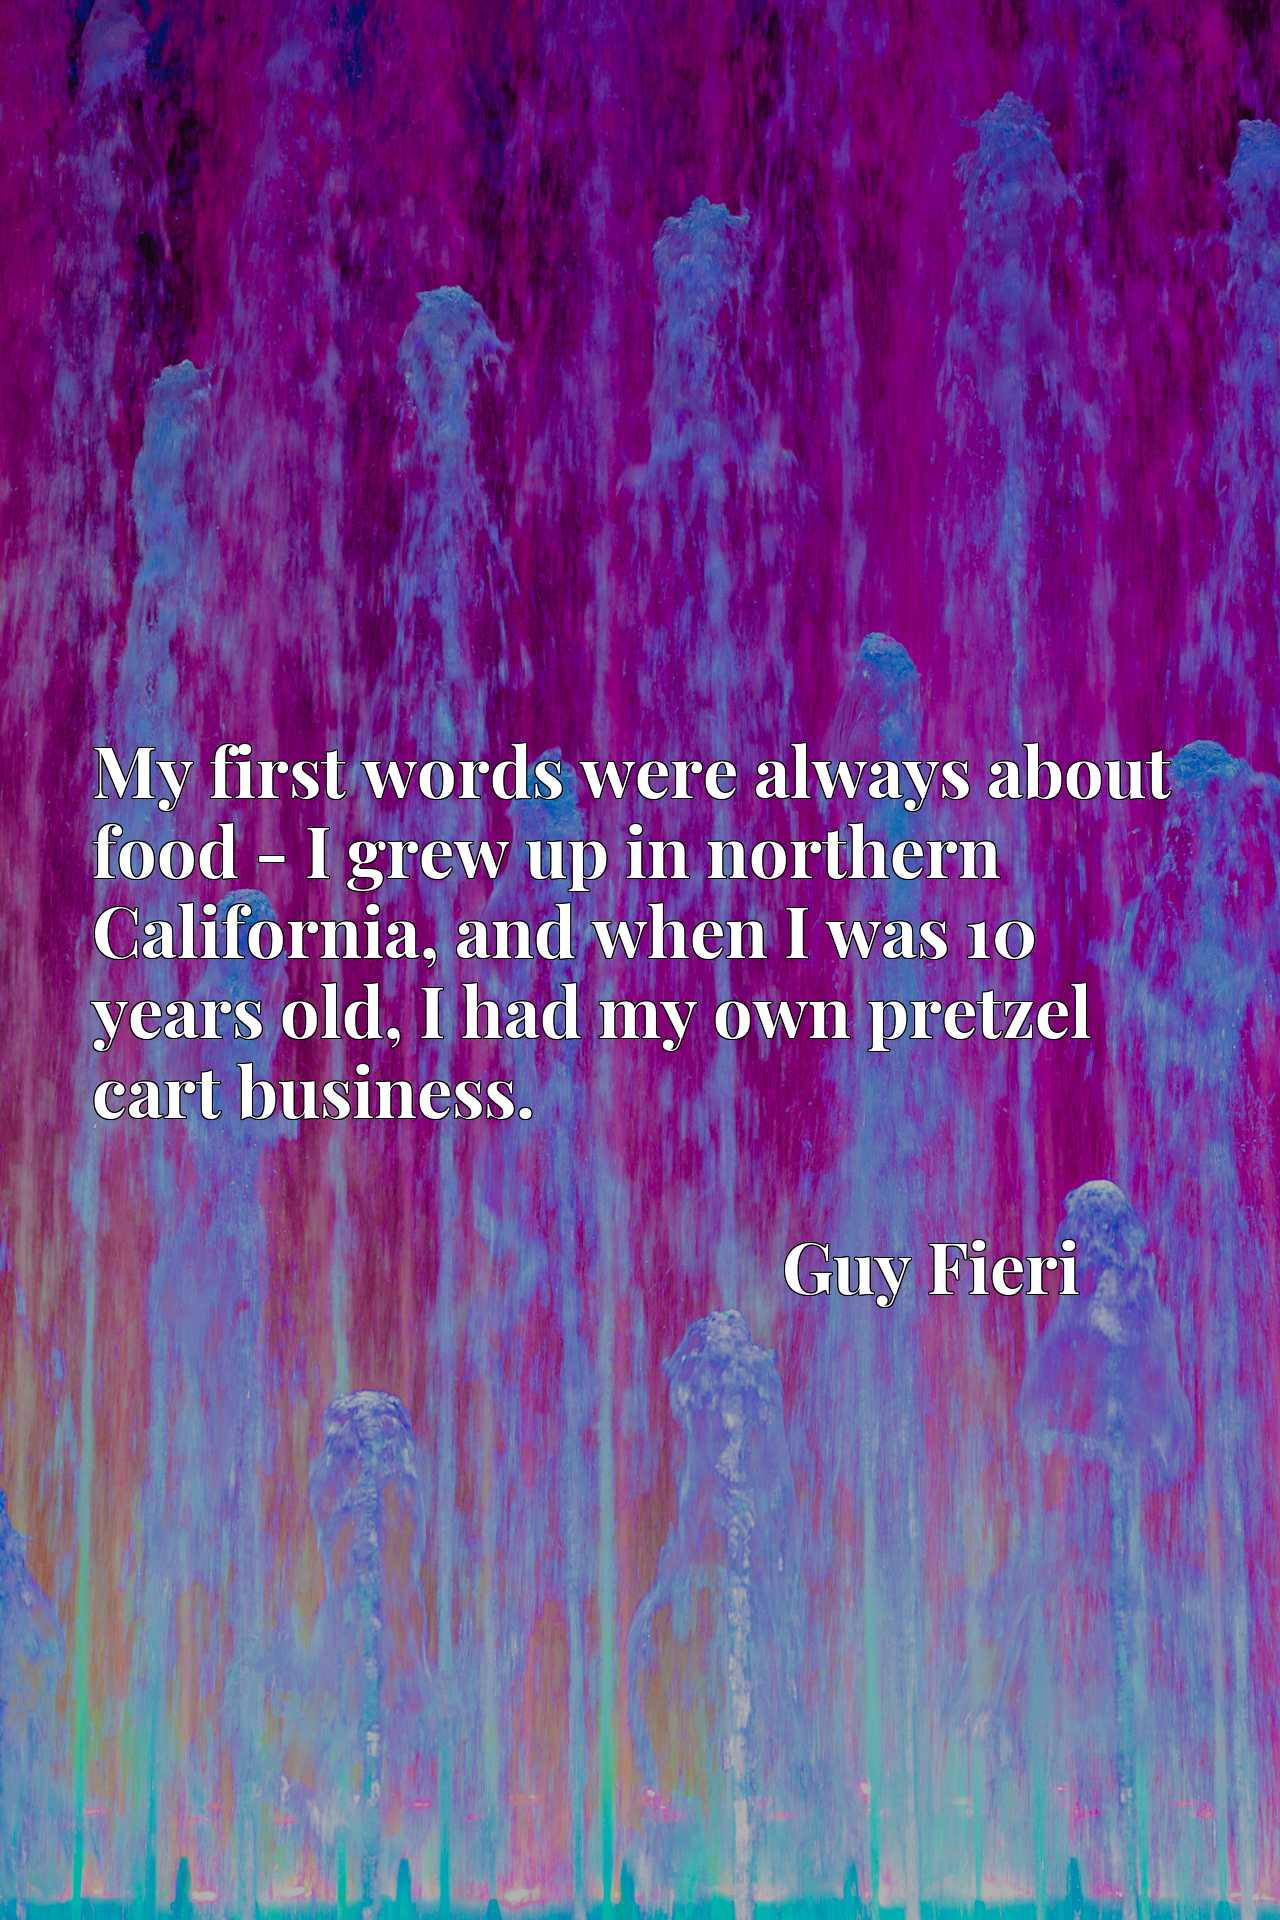 My first words were always about food - I grew up in northern California, and when I was 10 years old, I had my own pretzel cart business.